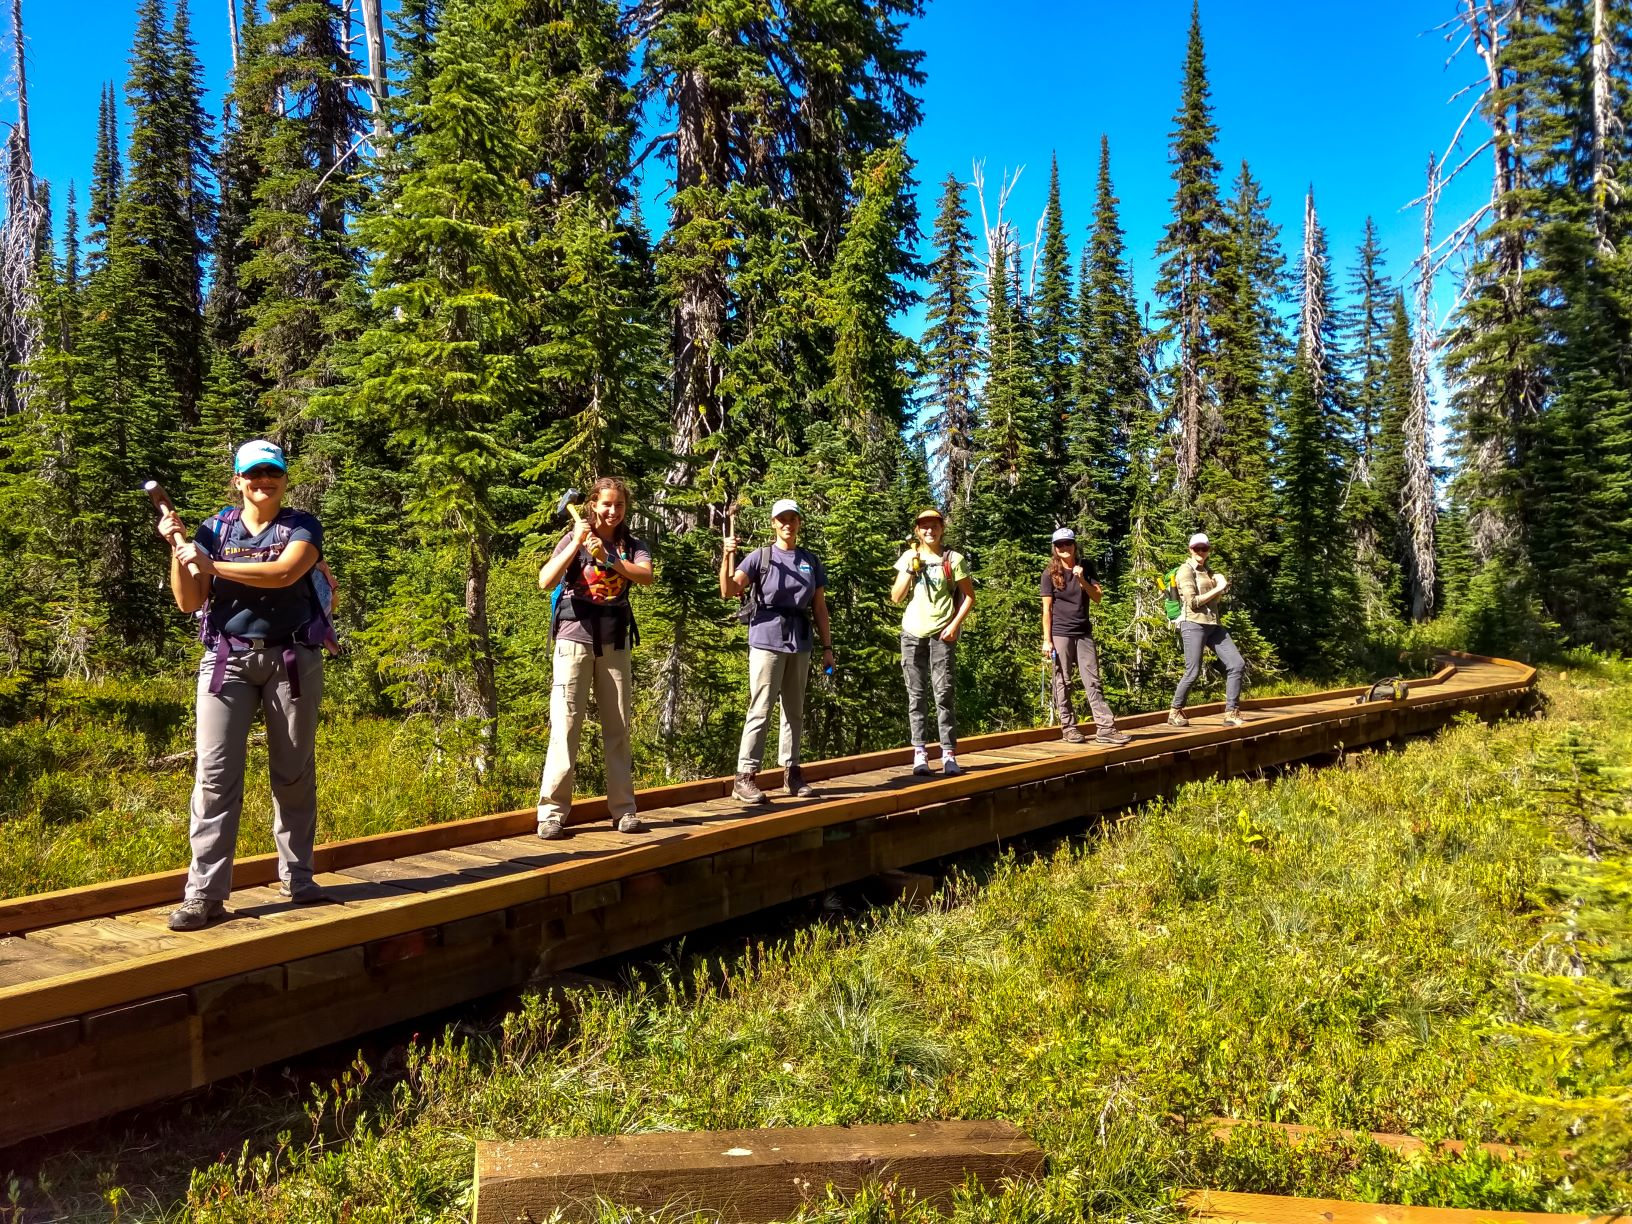 volunteer trail builders standing on a trail boardwalk-bridge in the forest, holding mallets